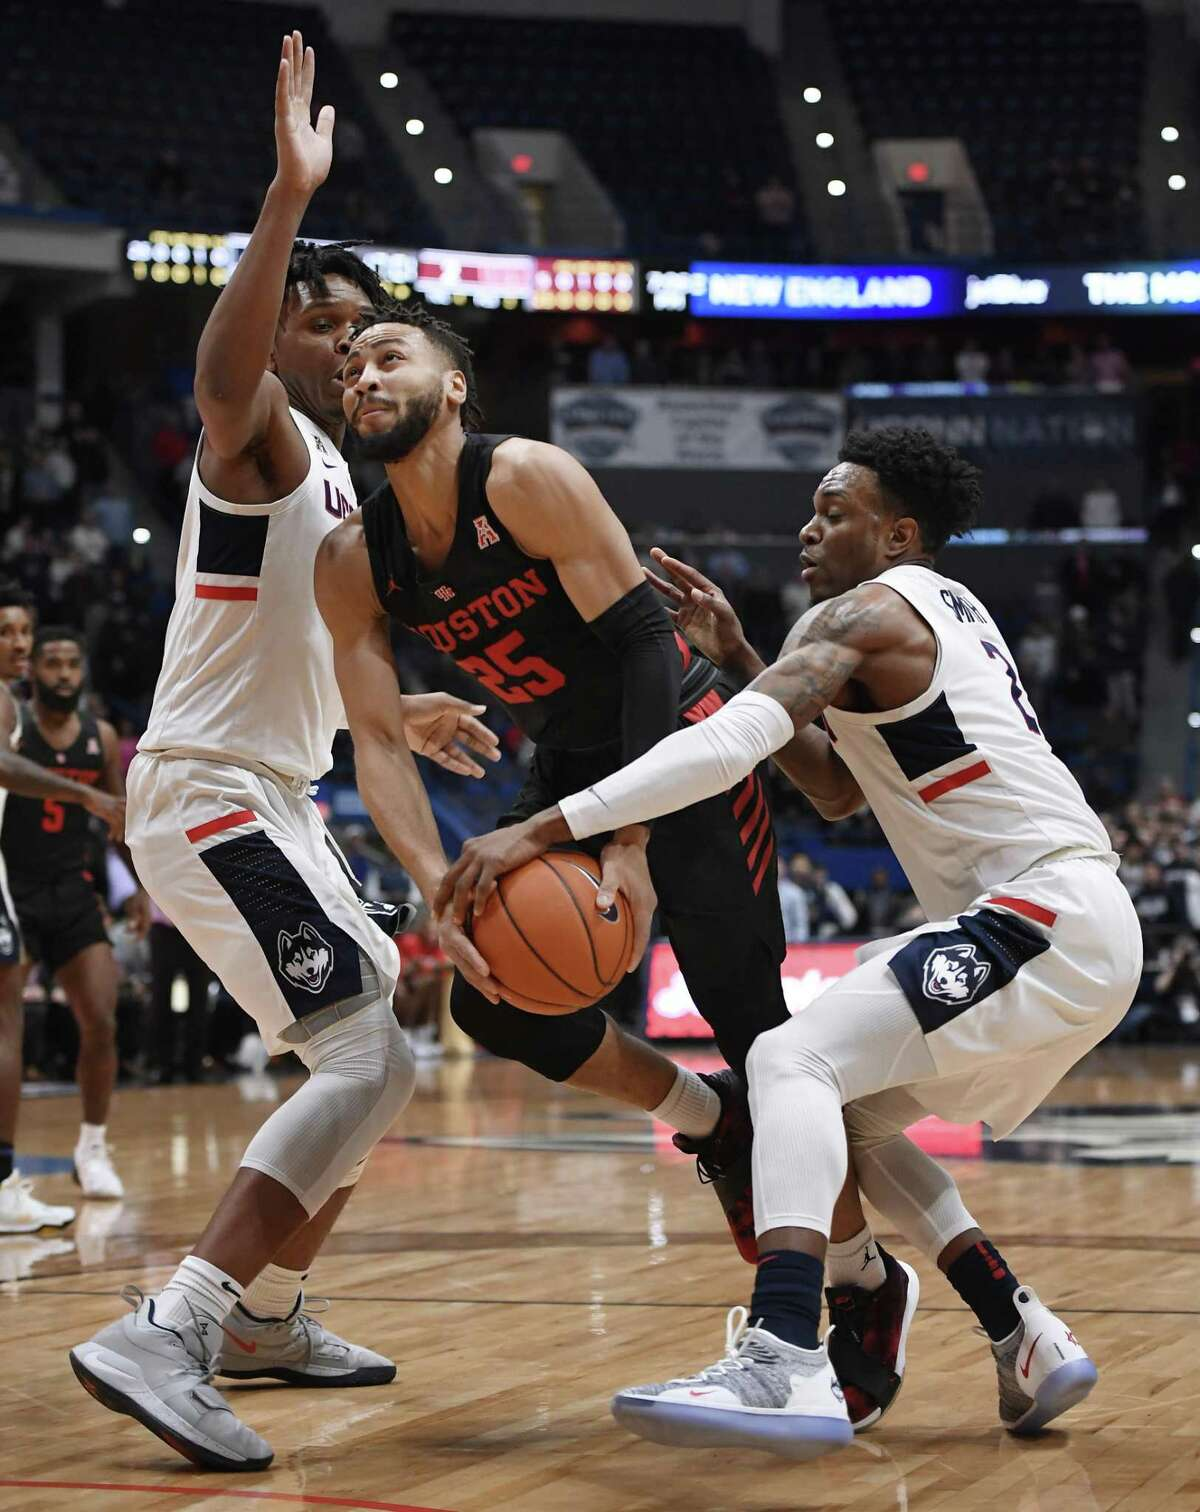 UConn's Tarin Smith, right, strips the ball from Houston's Galen Robinson Jr. (25) as Josh Carlton, left, defends during the first half a game on Feb. 14 in Hartford.